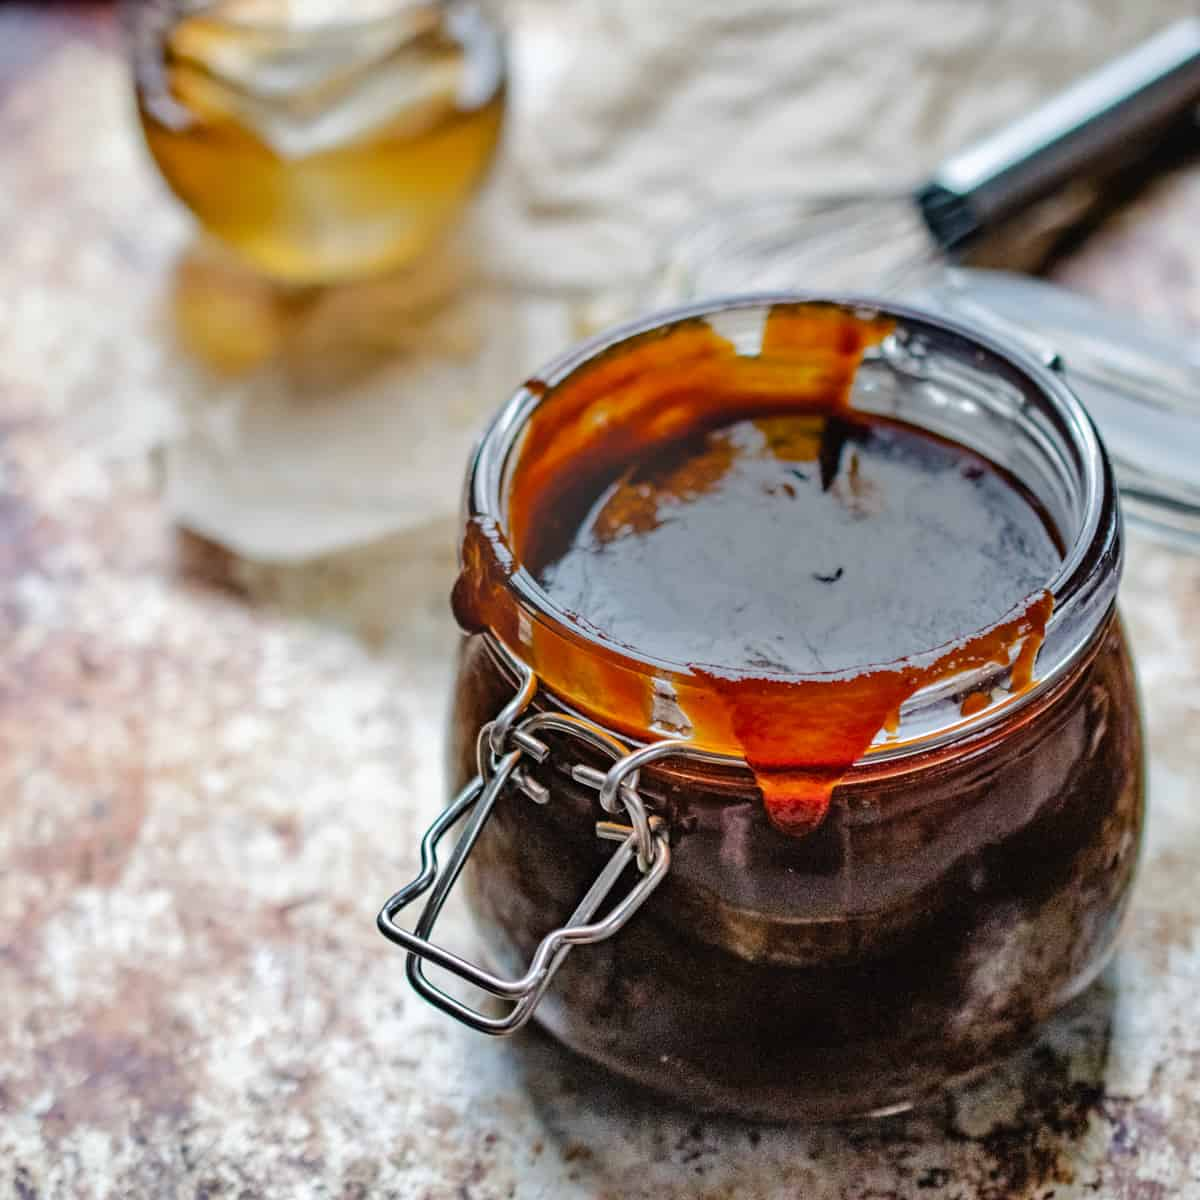 Gasket and hinge jar filled with barbecue sauce with honey on a whisk and glass of bourbon.